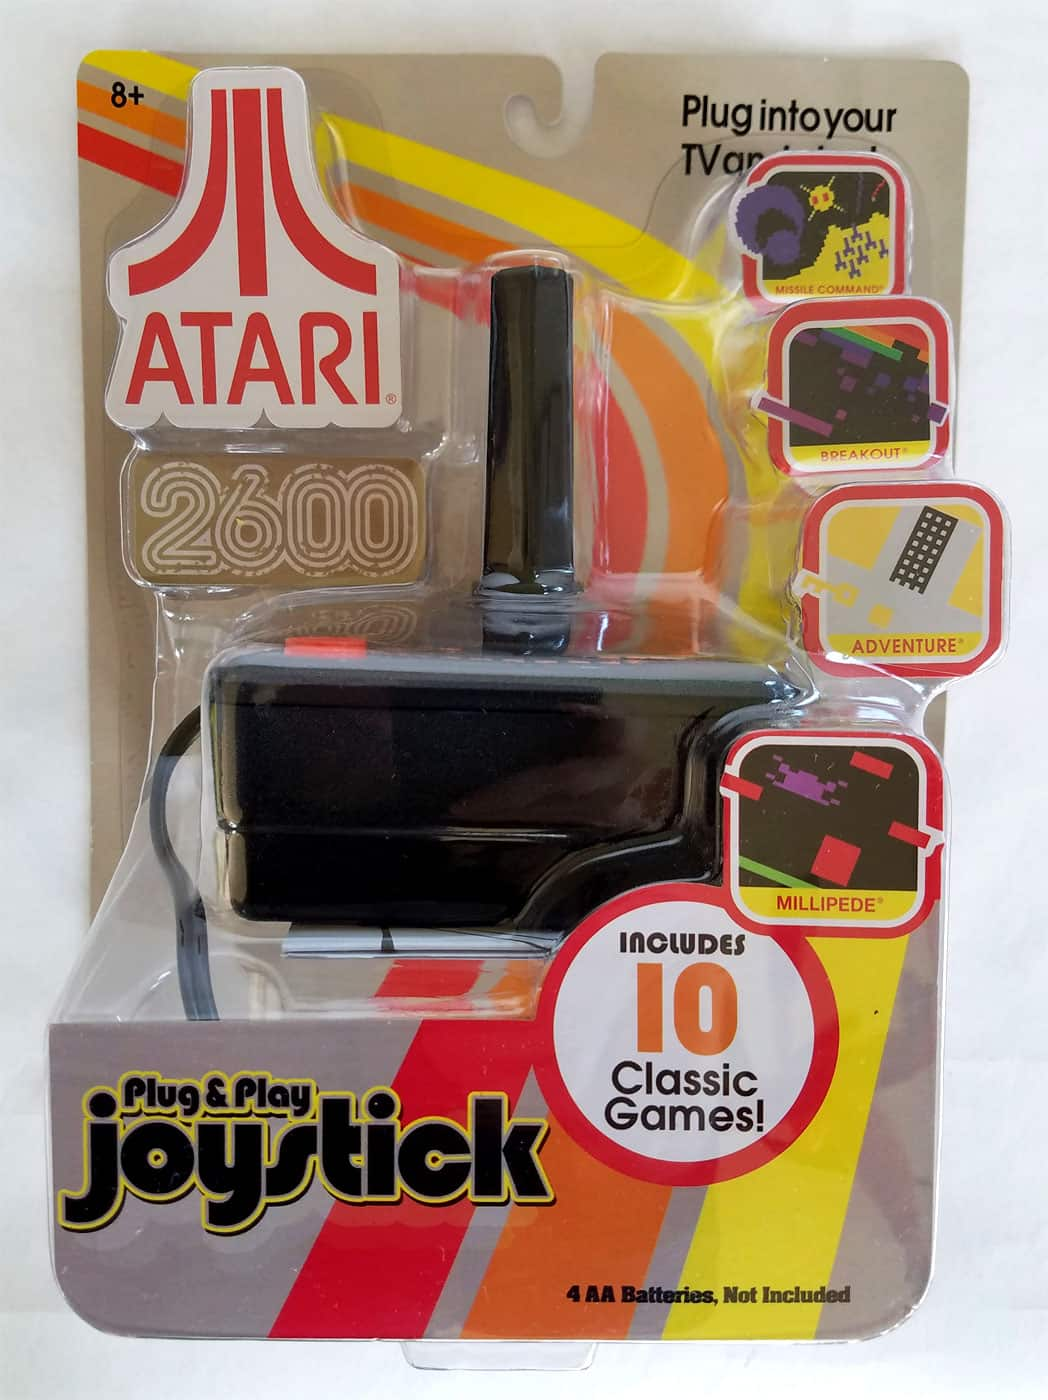 Atari 10-Game Plug & Play Joystick - $6.44 Clearance at Target - In-store Only YMMV